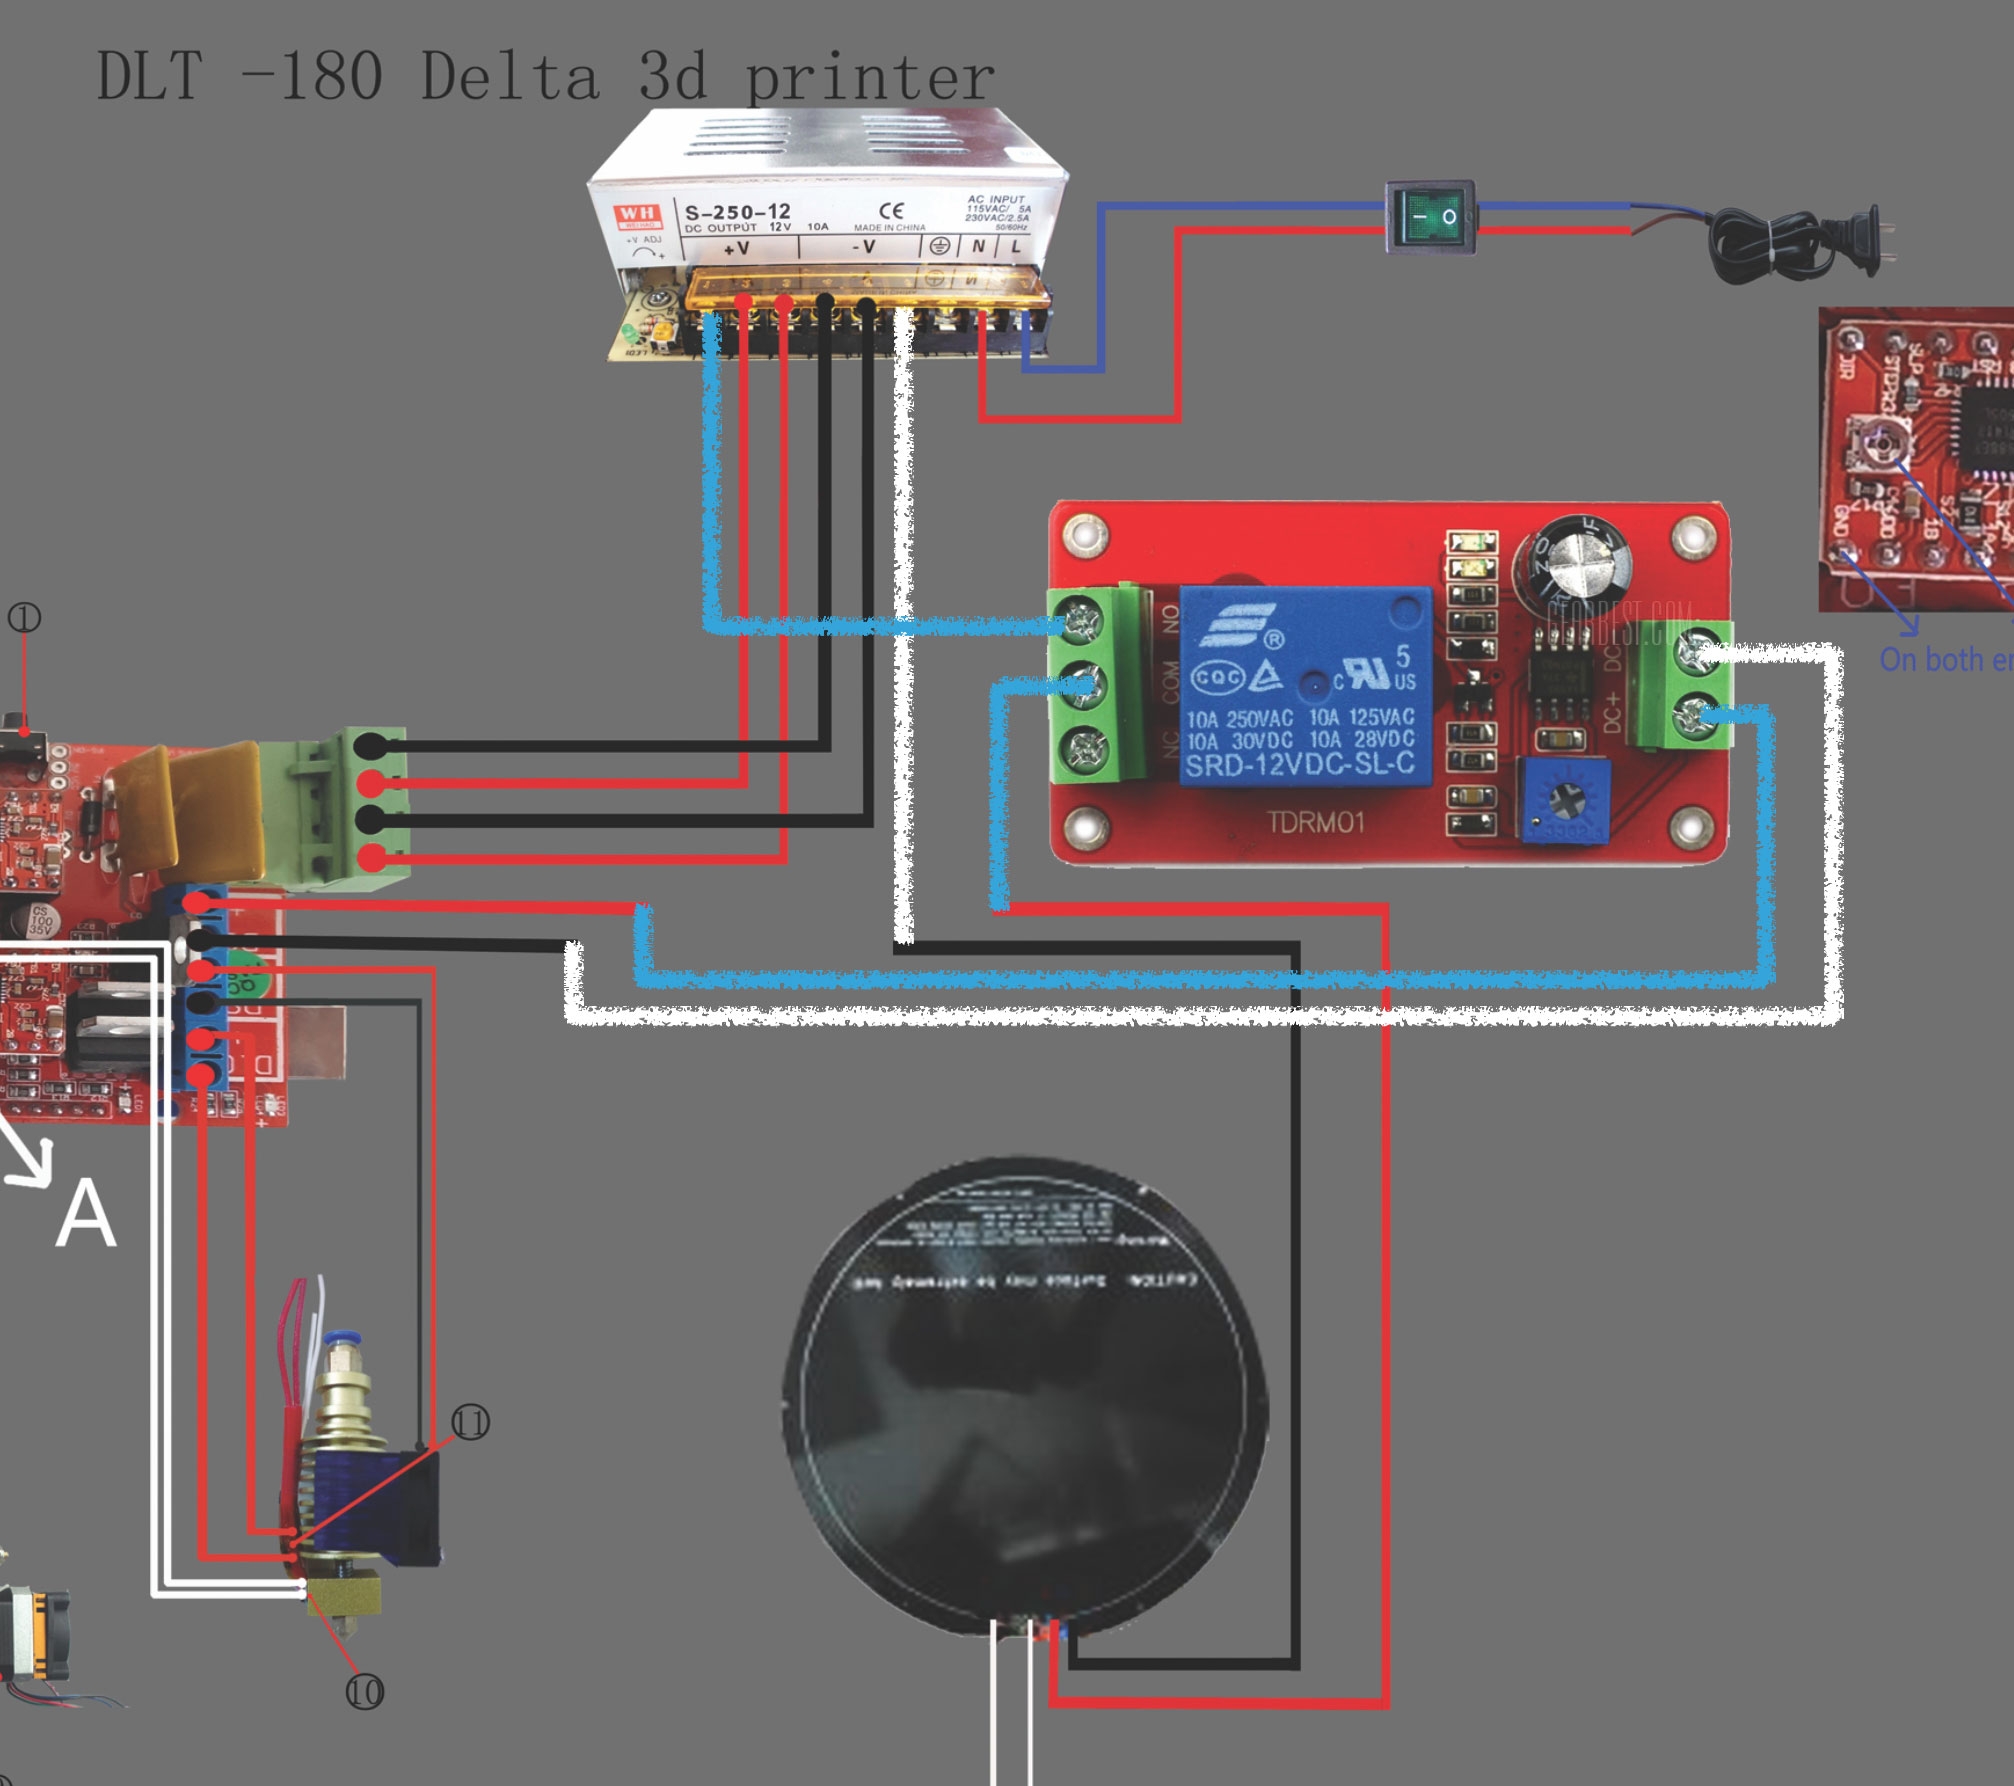 He3d Delta Dlt 180 Heat Bed Relay Wiring 3d Printers Talk Heating Pad Diagram Newwiring Copy 02014x1786 321 Kb